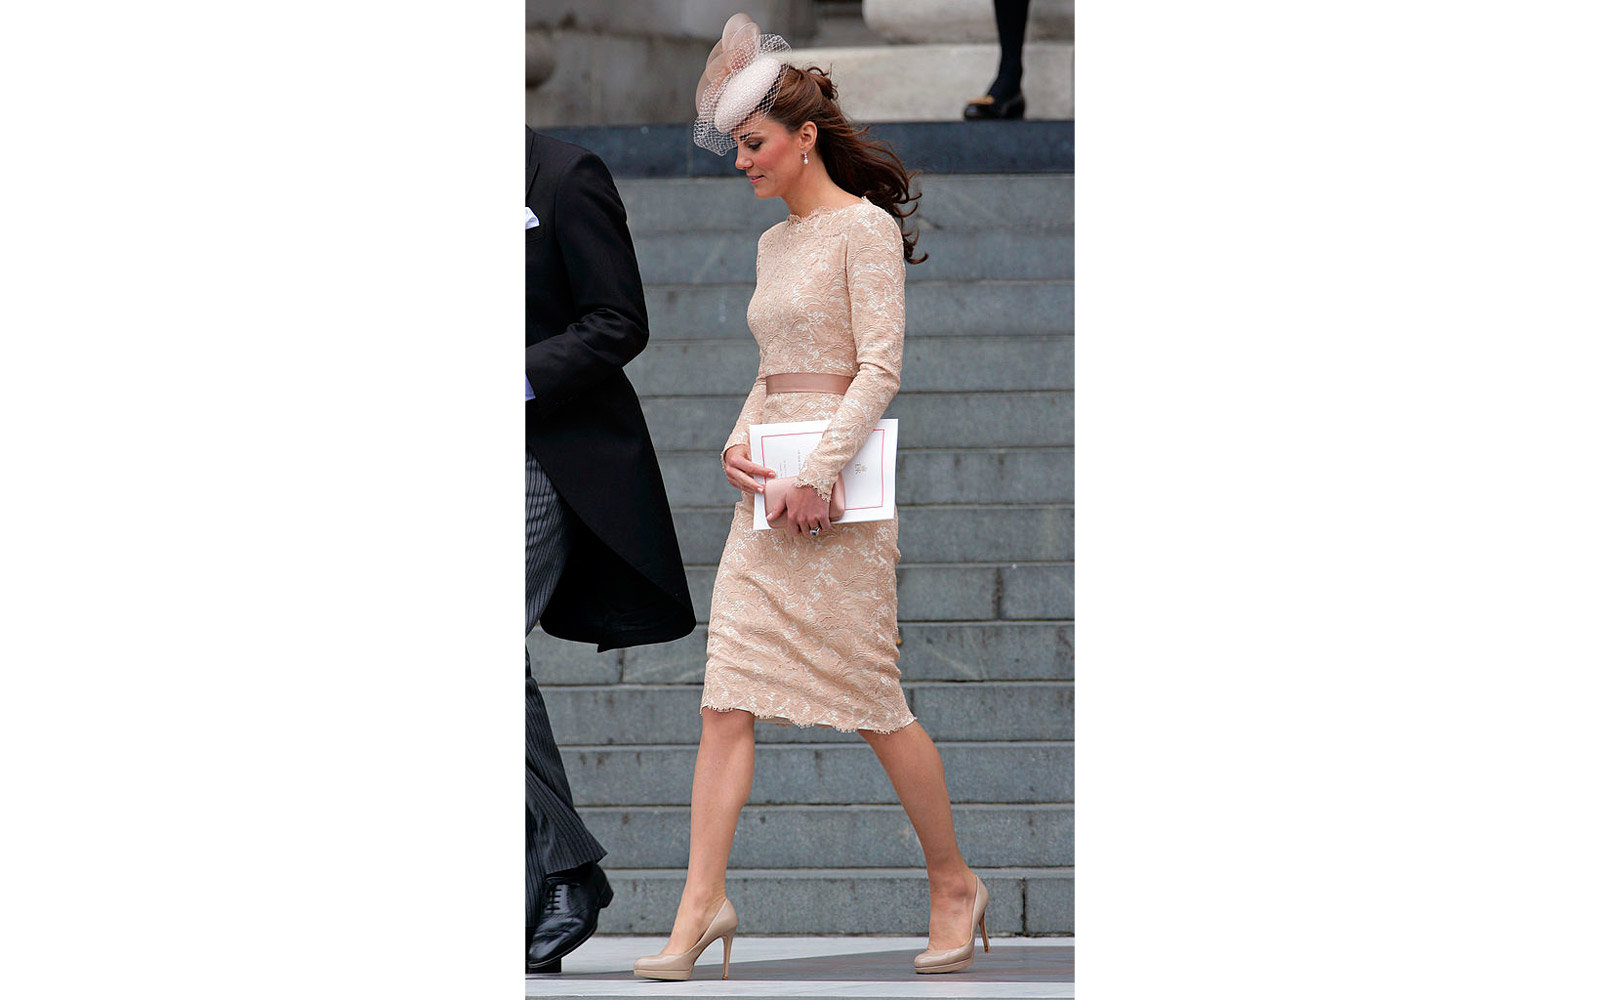 LONDON, UNITED KINGDOM - JUNE 05: (EMBARGOED FOR PUBLICATION IN UK NEWSPAPERS UNTIL 48 HOURS AFTER CREATE DATE AND TIME) Catherine, Duchess of Cambridge attends a Service of Thanksgiving to celebrate Queen Elizabeth II's Diamond Jubilee at St Paul's Cathe